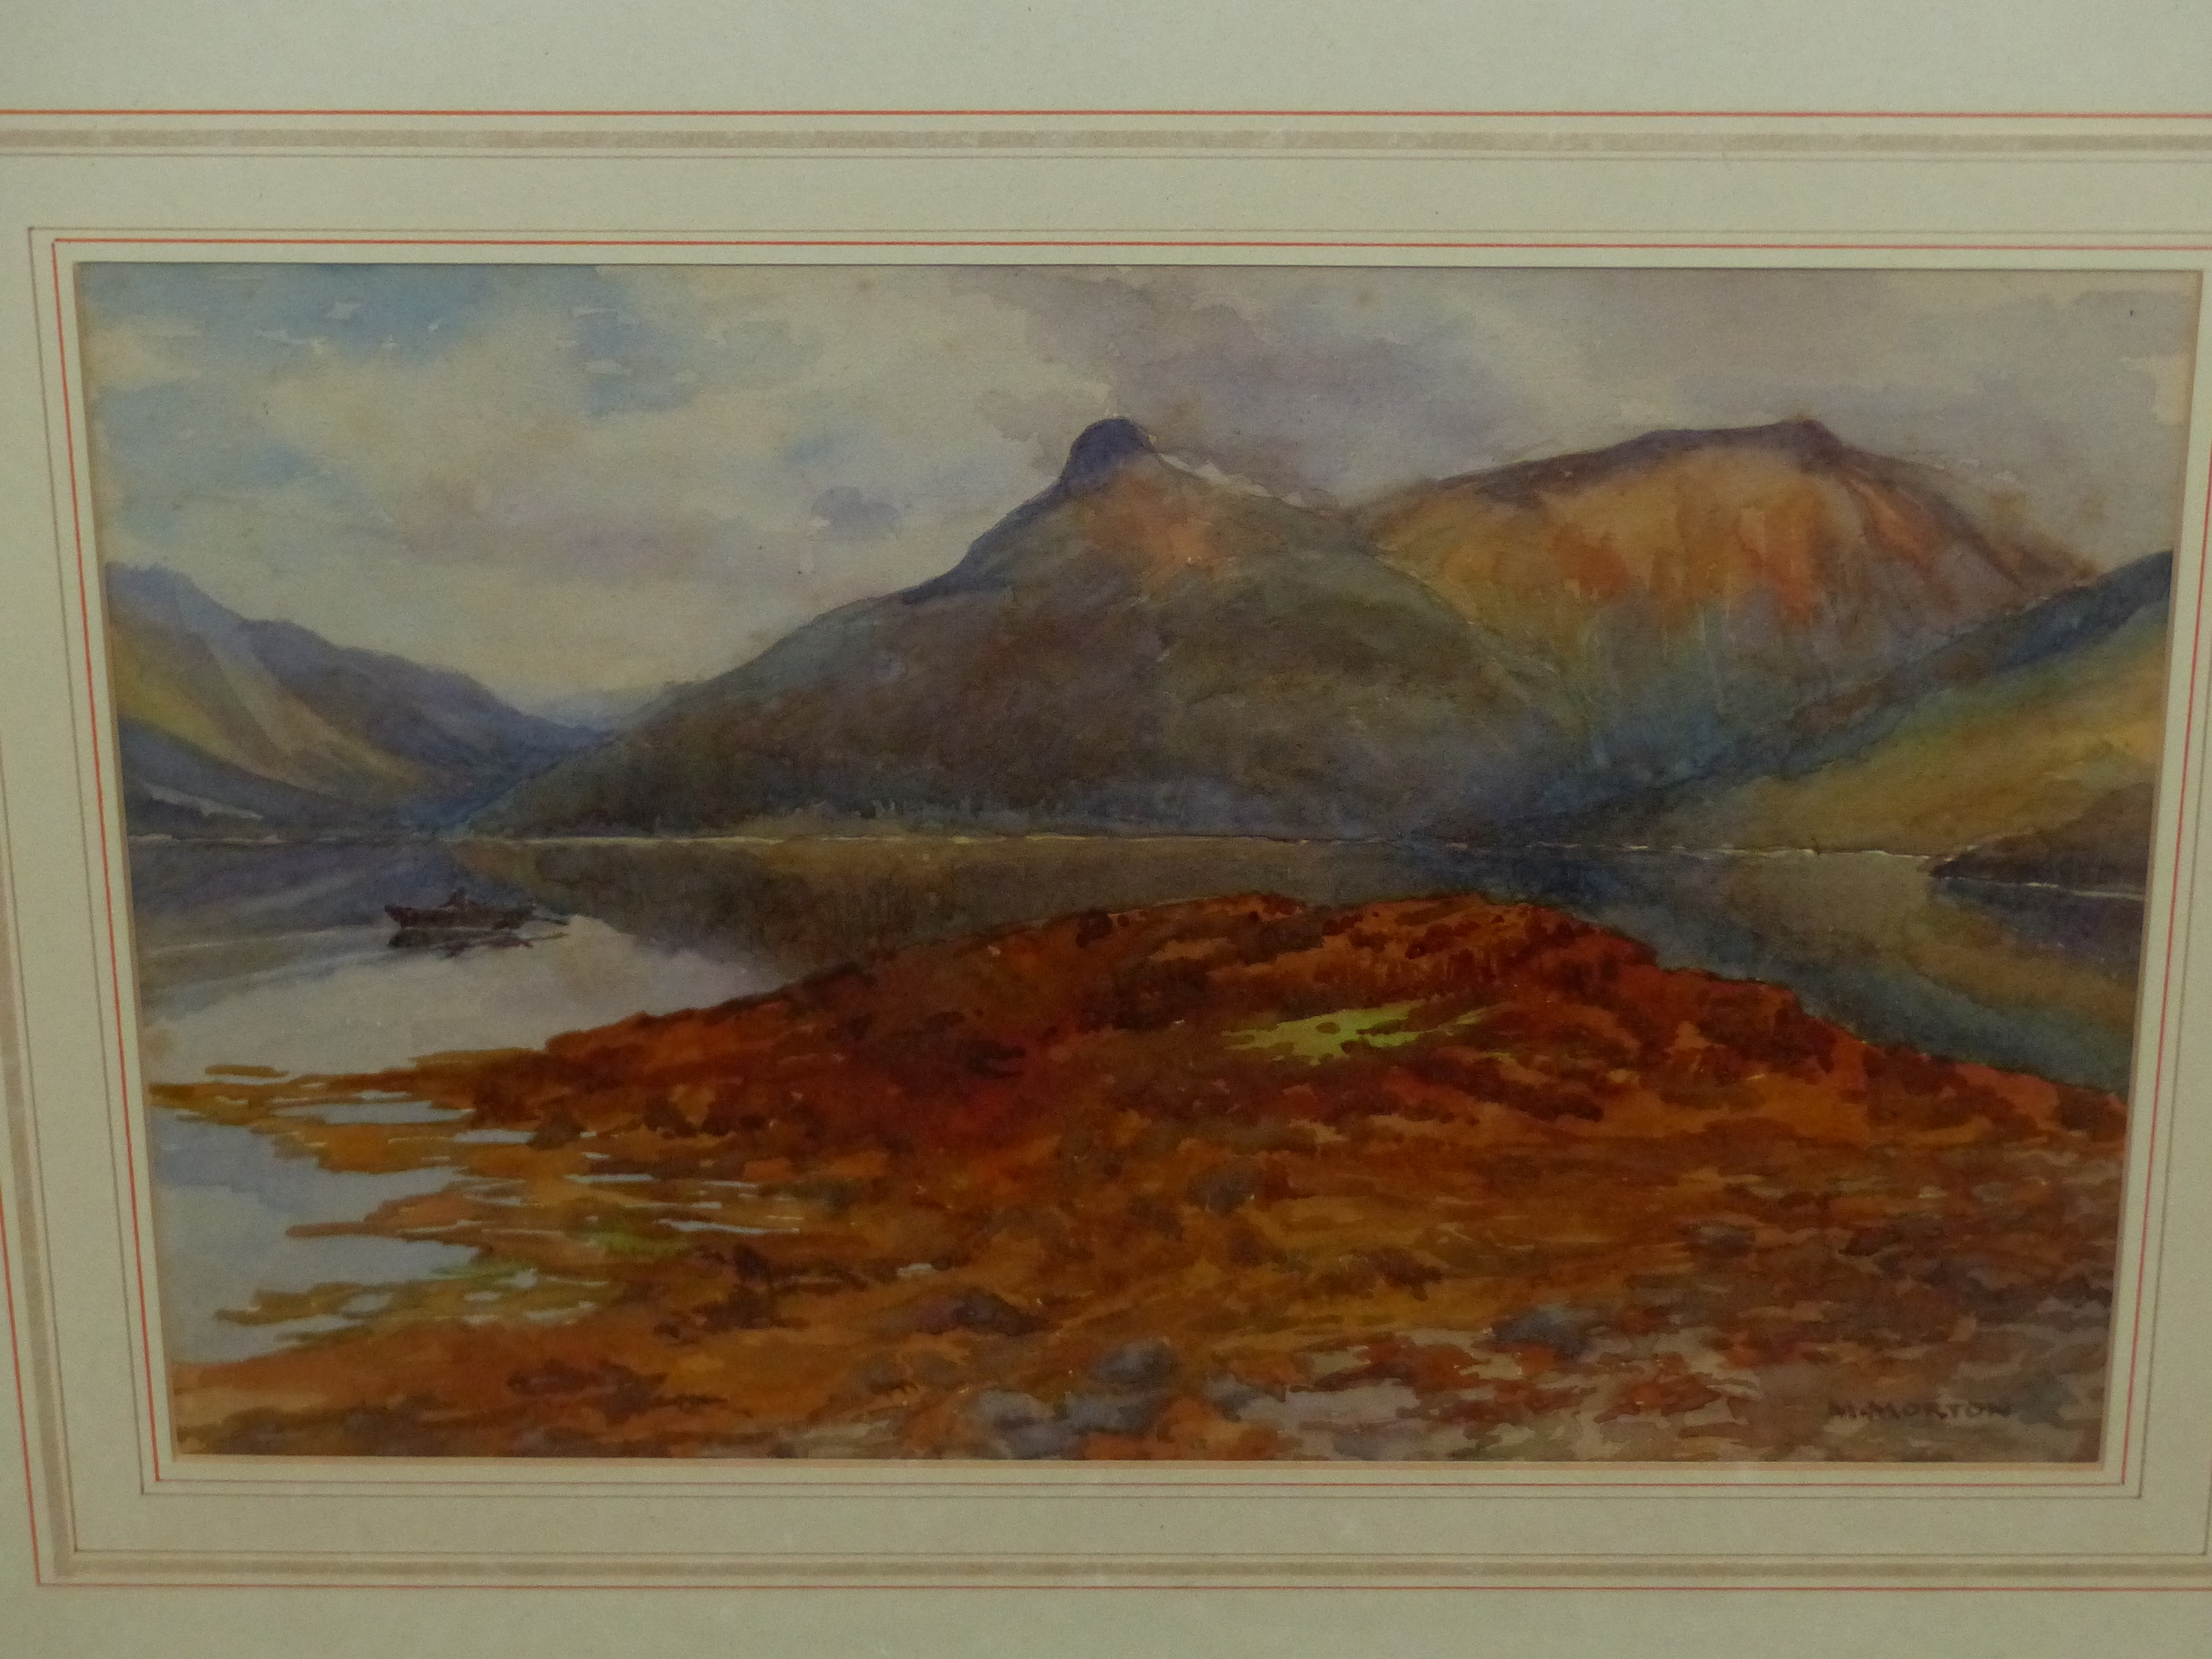 MARY MORTON (EARLY 20th C. ENGLISH SCHOOL) A HIGHLAND LAKE VIEW, SIGNED WATERCOLOUR. 24 x 35cms - Image 2 of 7